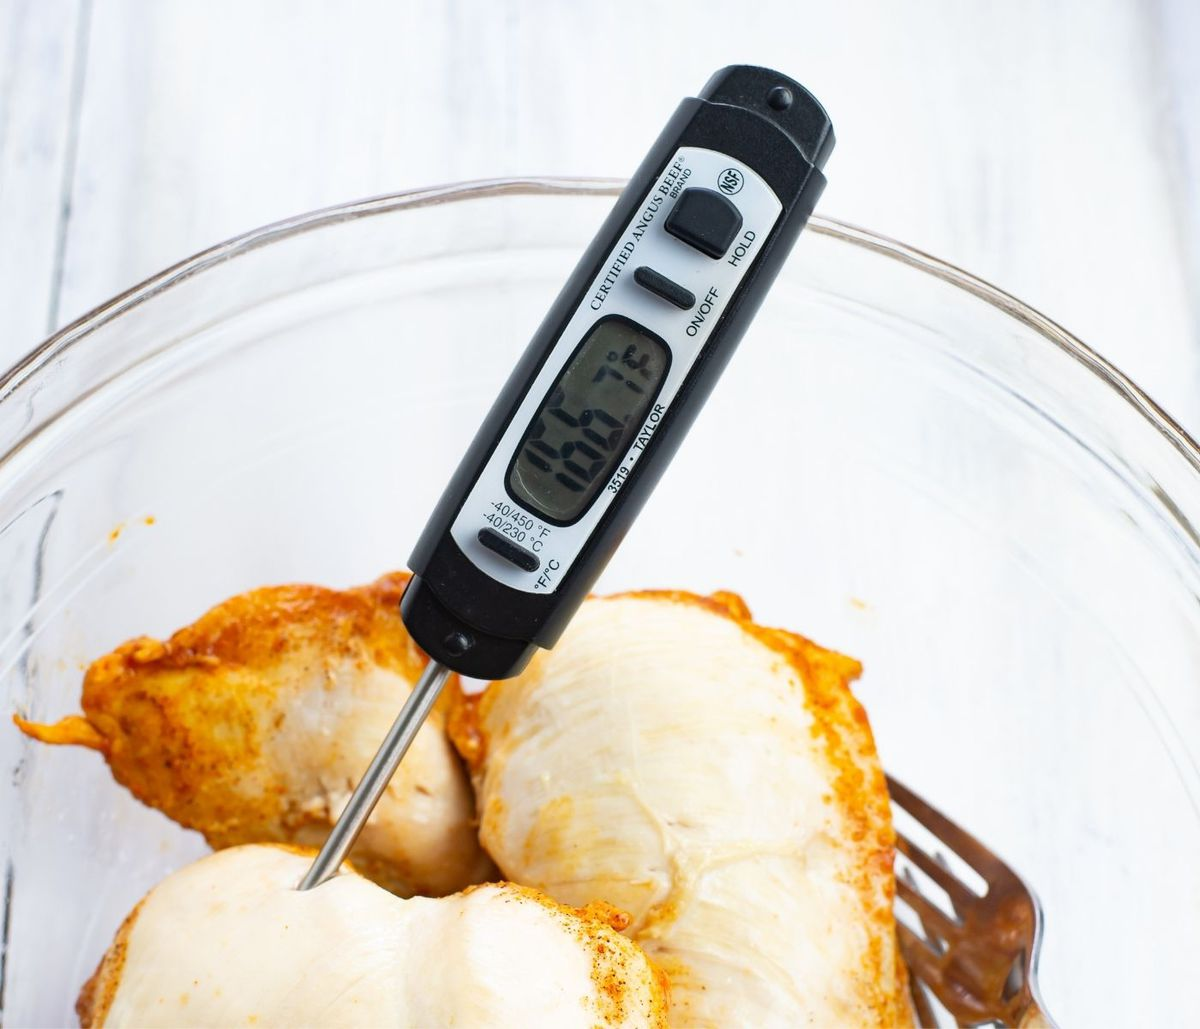 An instant read thermometer checking the internal temp of cooked chicken.